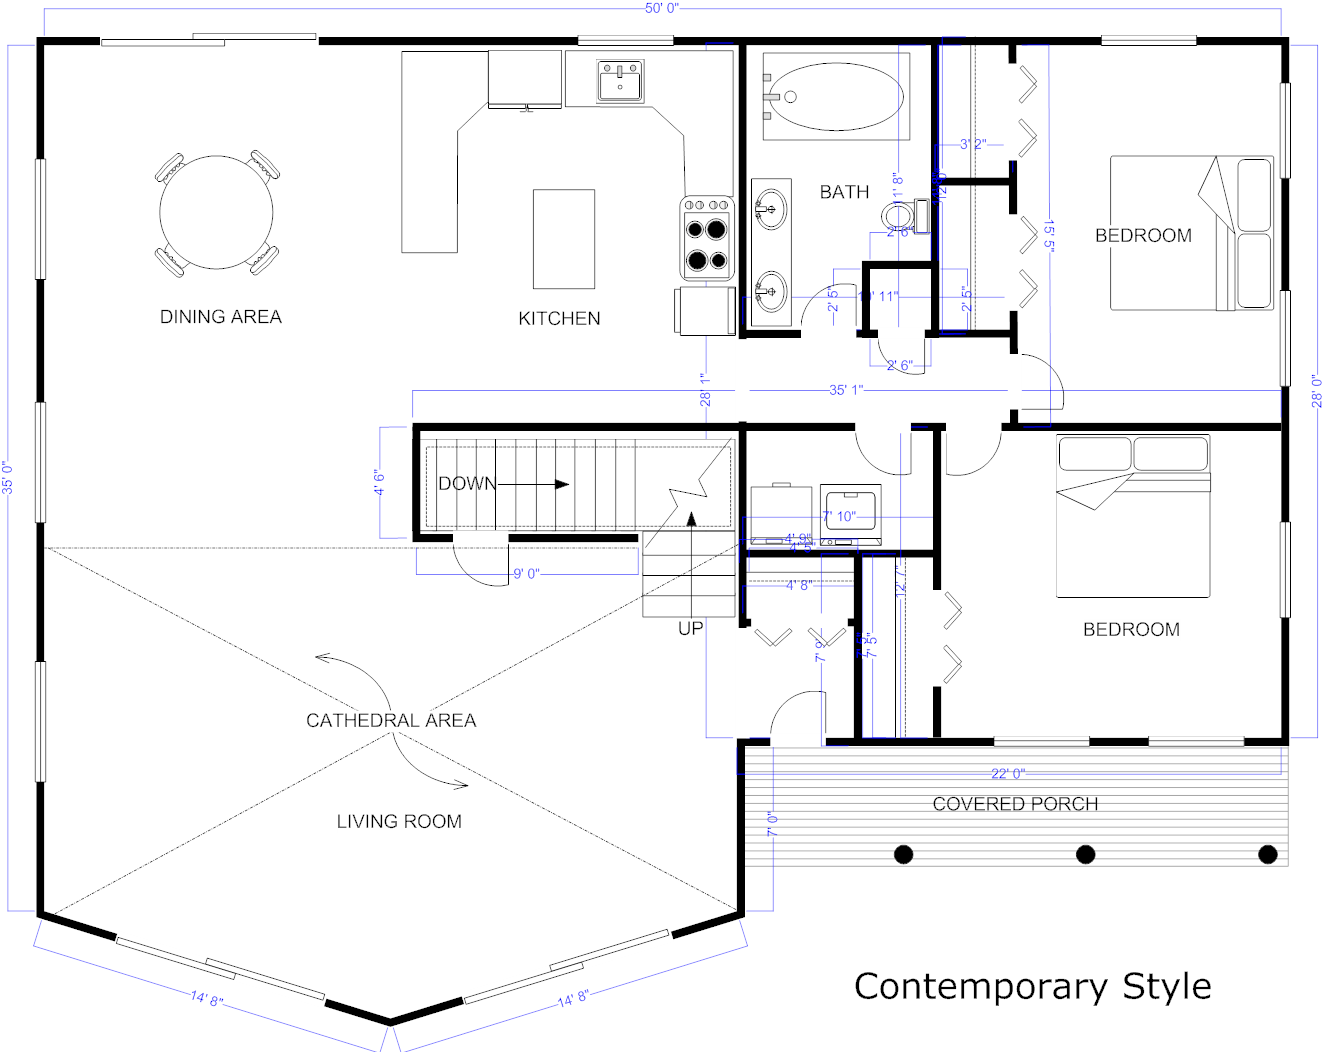 blueprint house design - How To Draw A Blueprint For A House